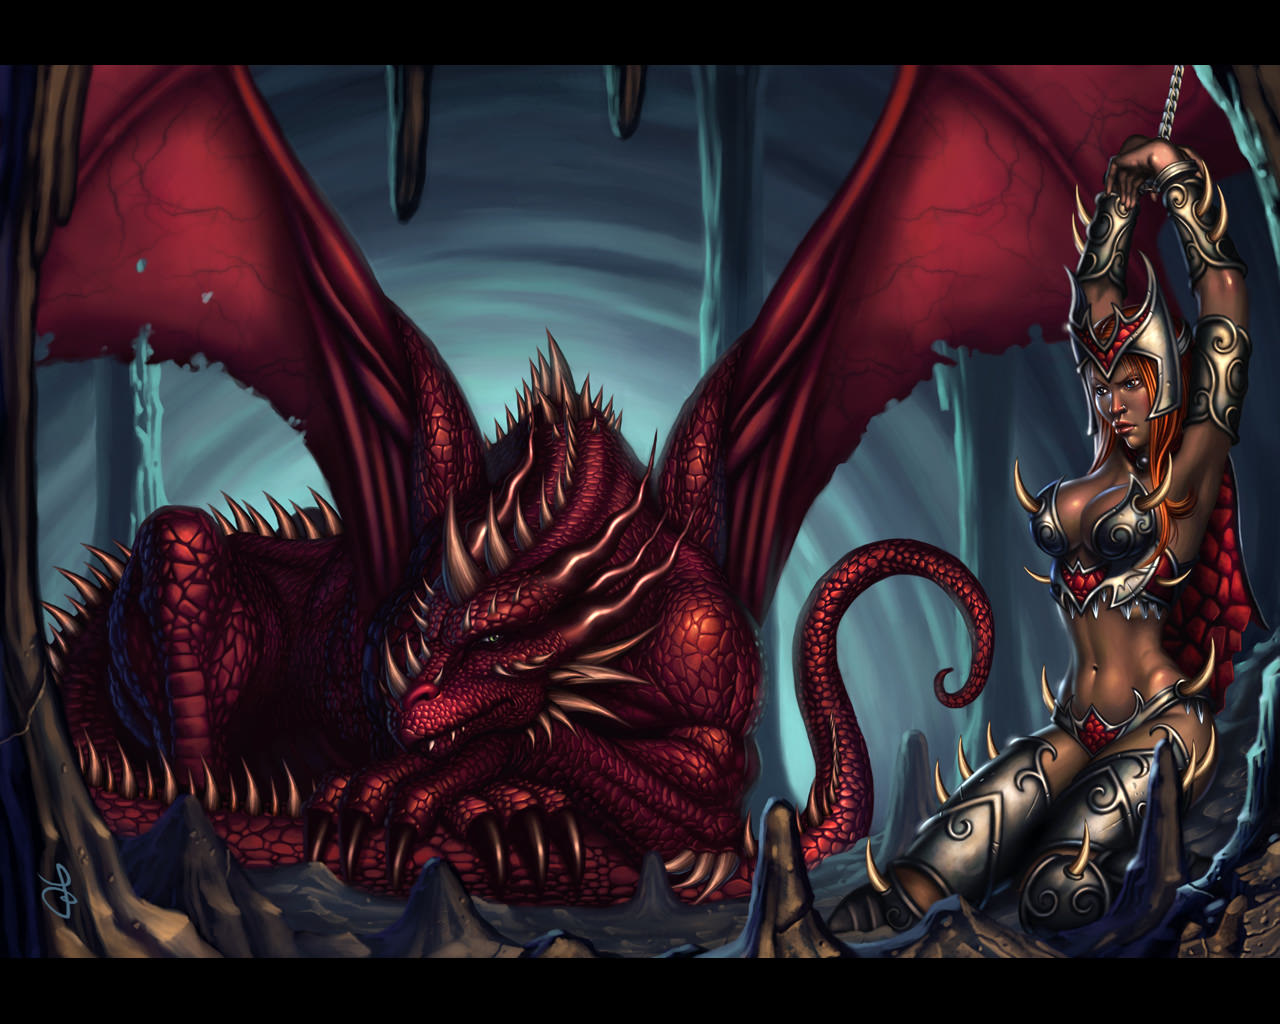 1280x1024 Girl Slave wallpaper from Dragons wallpapers